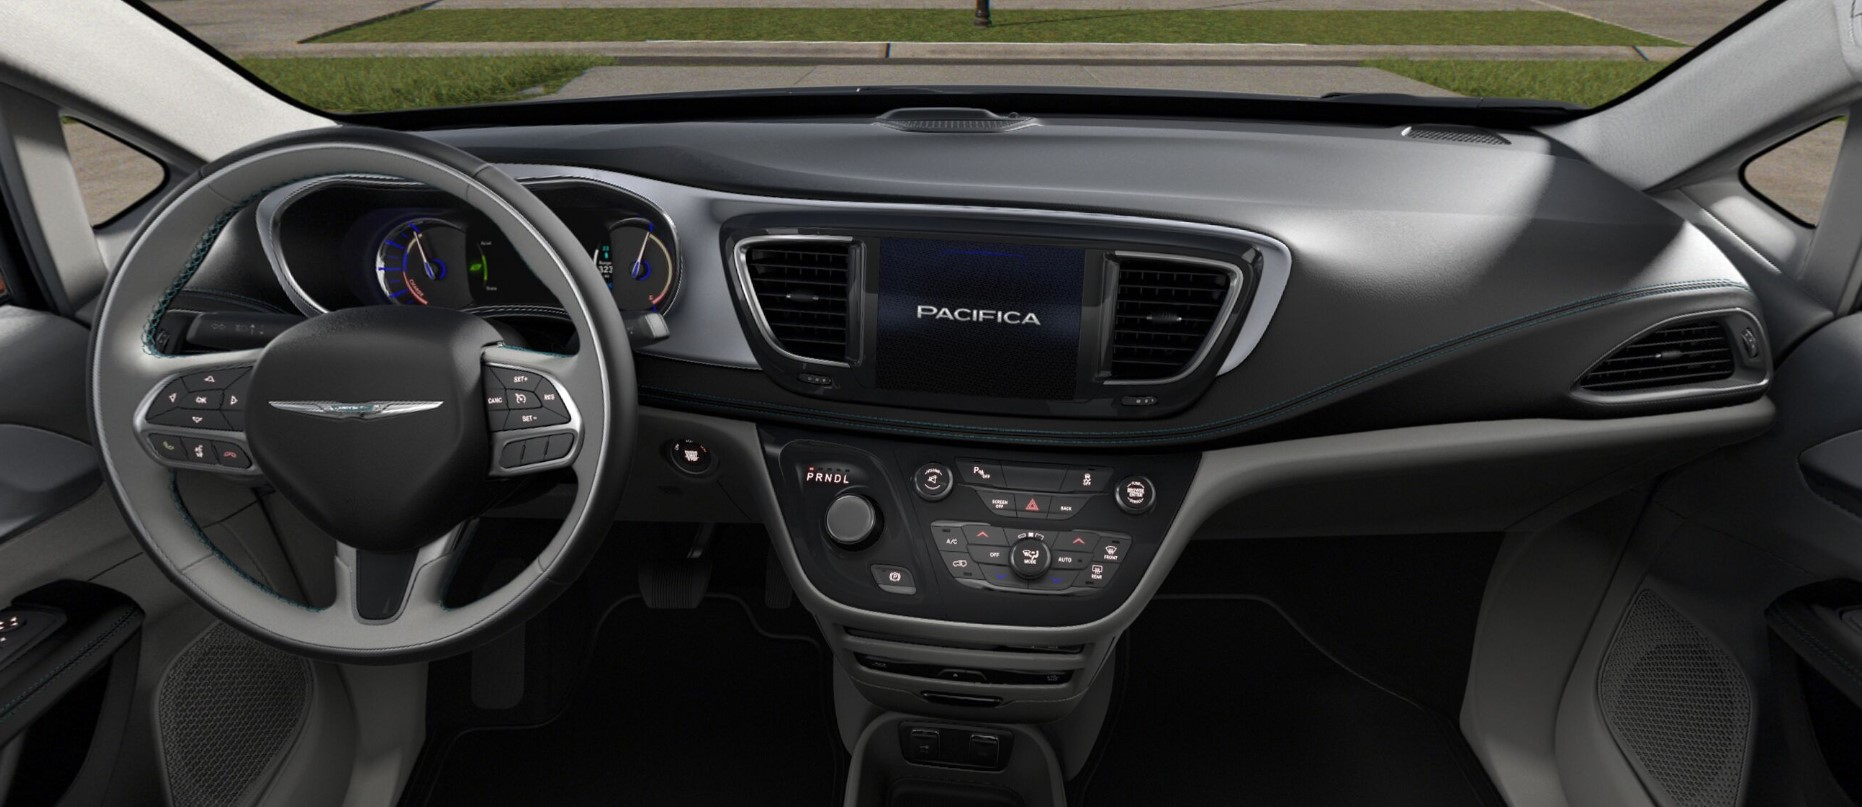 2019 Chrysler Pacifica Hybrid Limited Interior